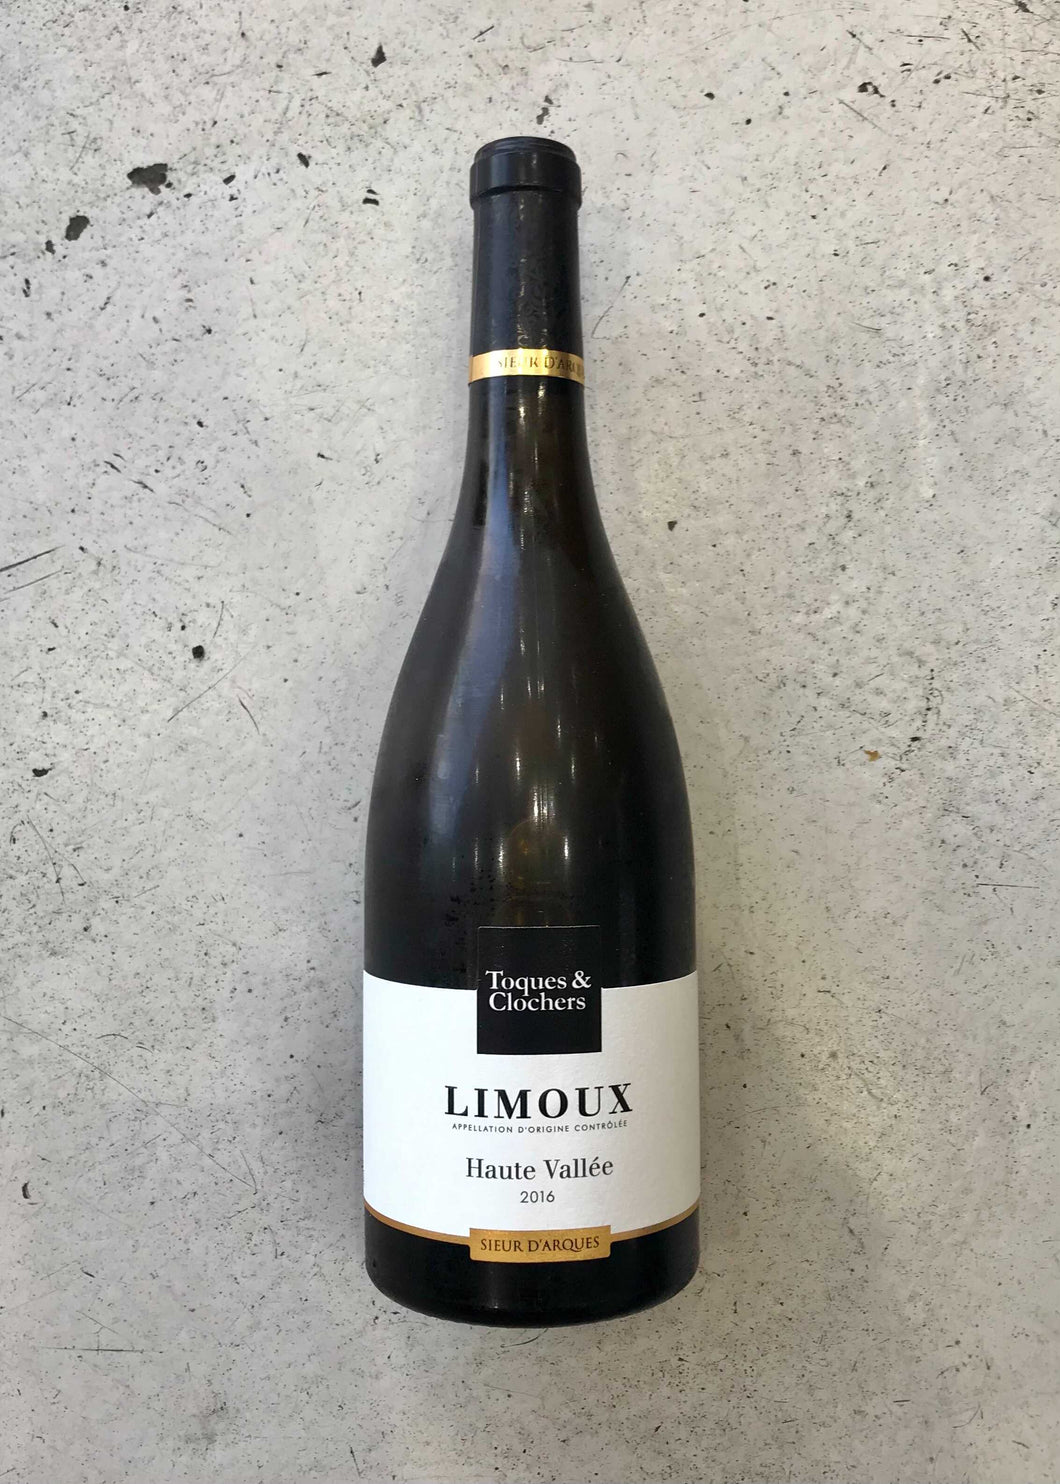 Toques & Clochers Limoux Chardonnay 2016 13% (750ml)